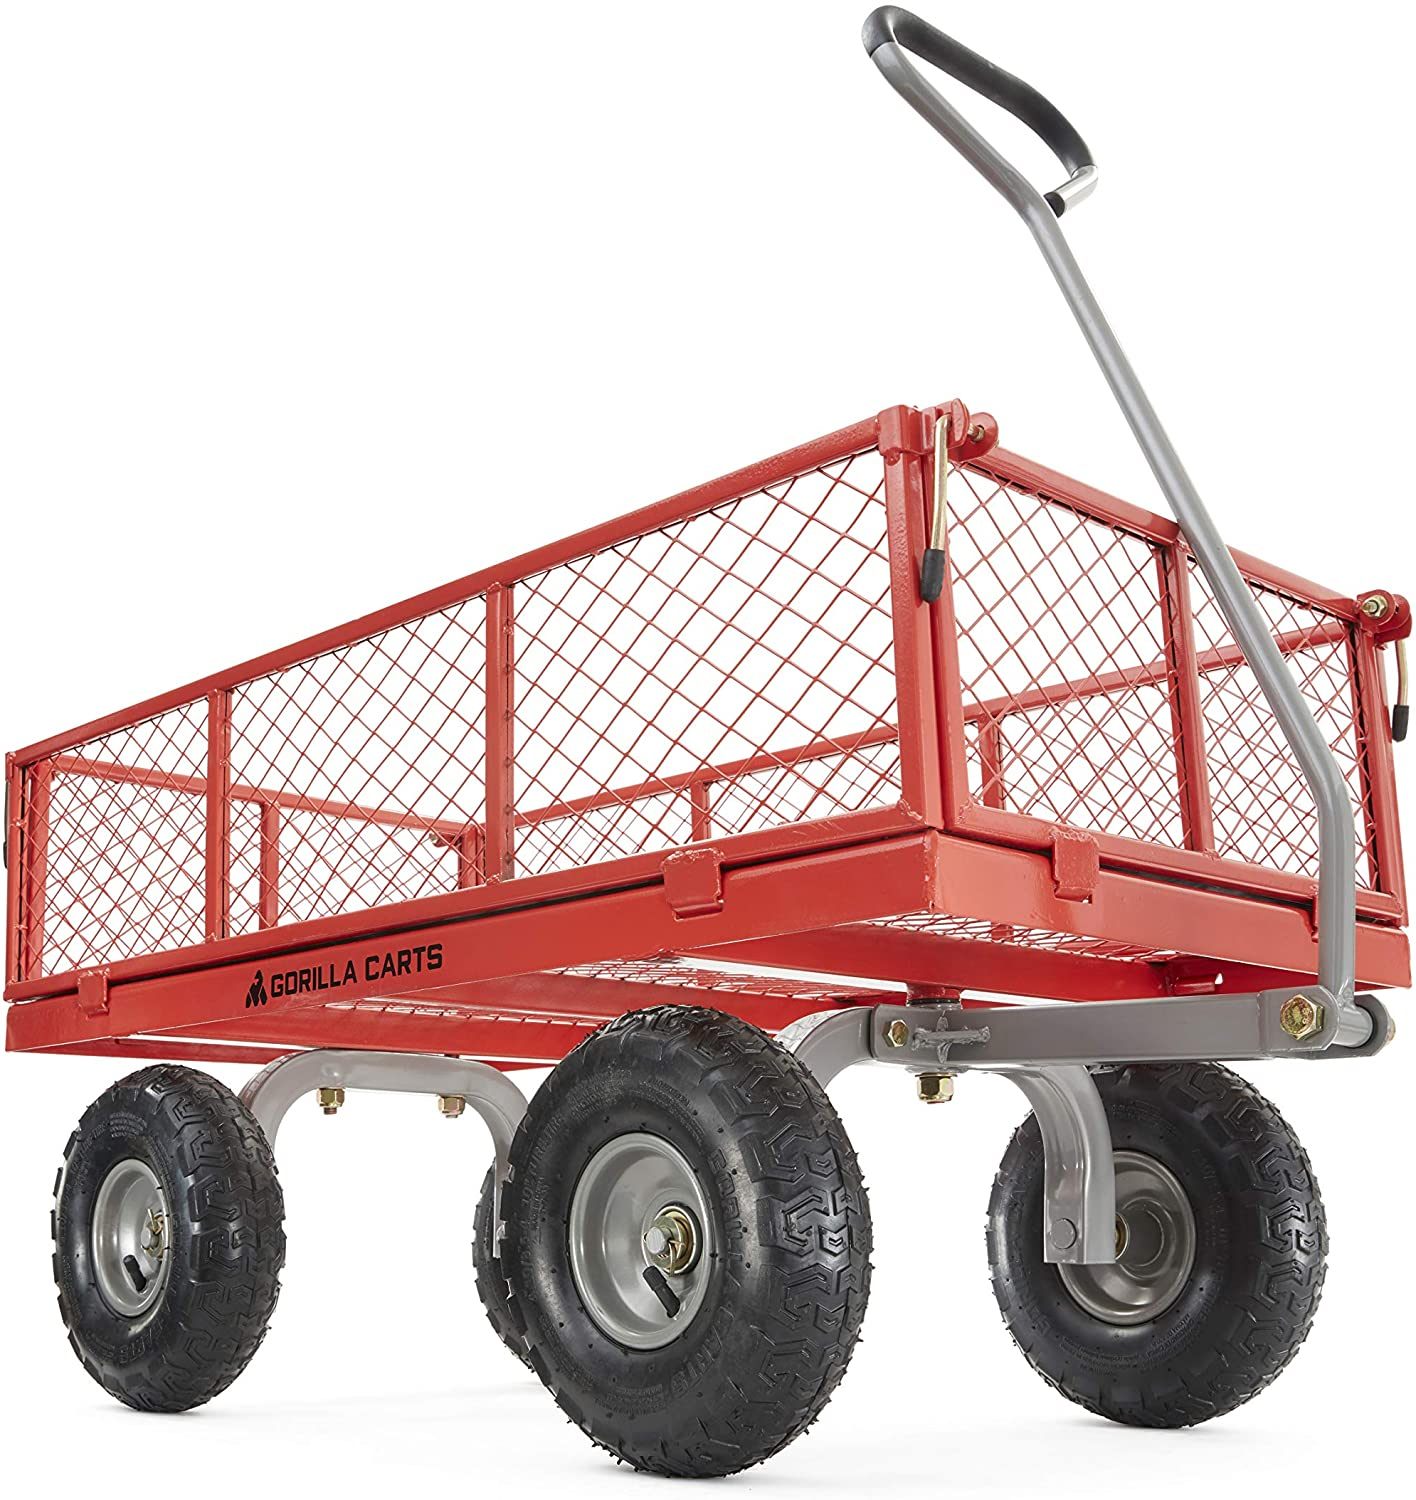 Gorilla Carts GOR800-COM Steel Utility Cart with Removable Sides